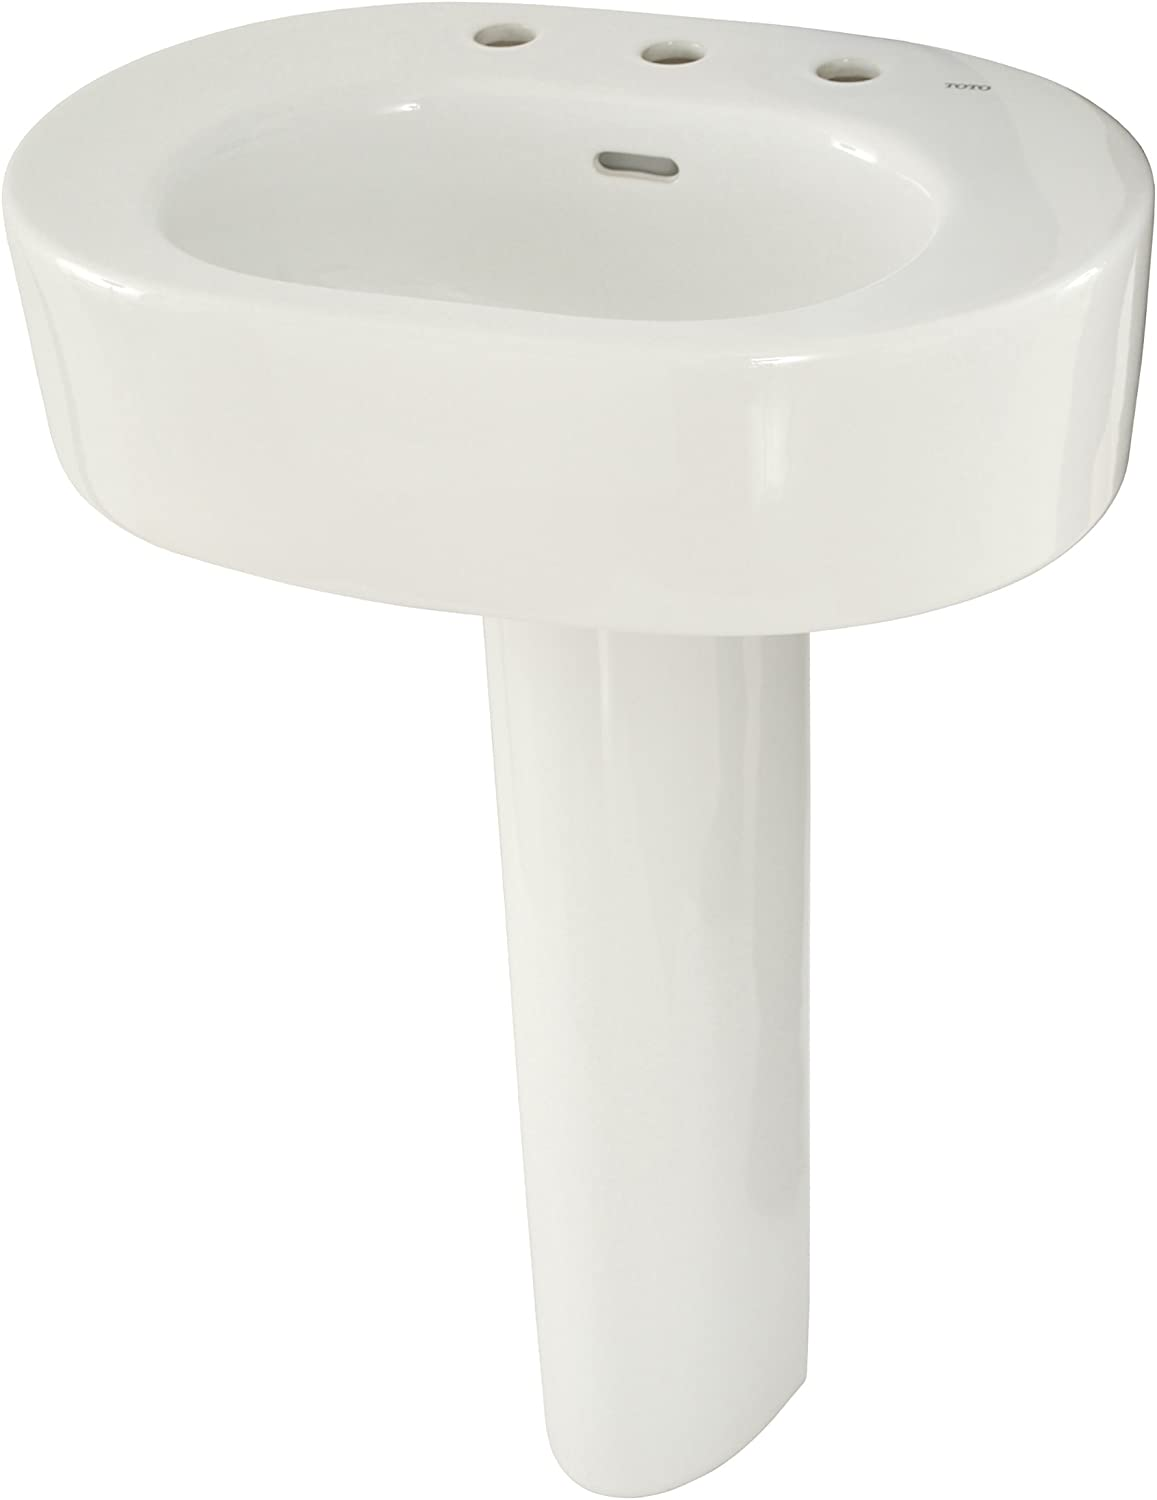 Toto Lpt790 8 11 Nexus Lavatory And Pedestal With 8 Inch Centers Colonial White Pedestal Sinks Amazon Com